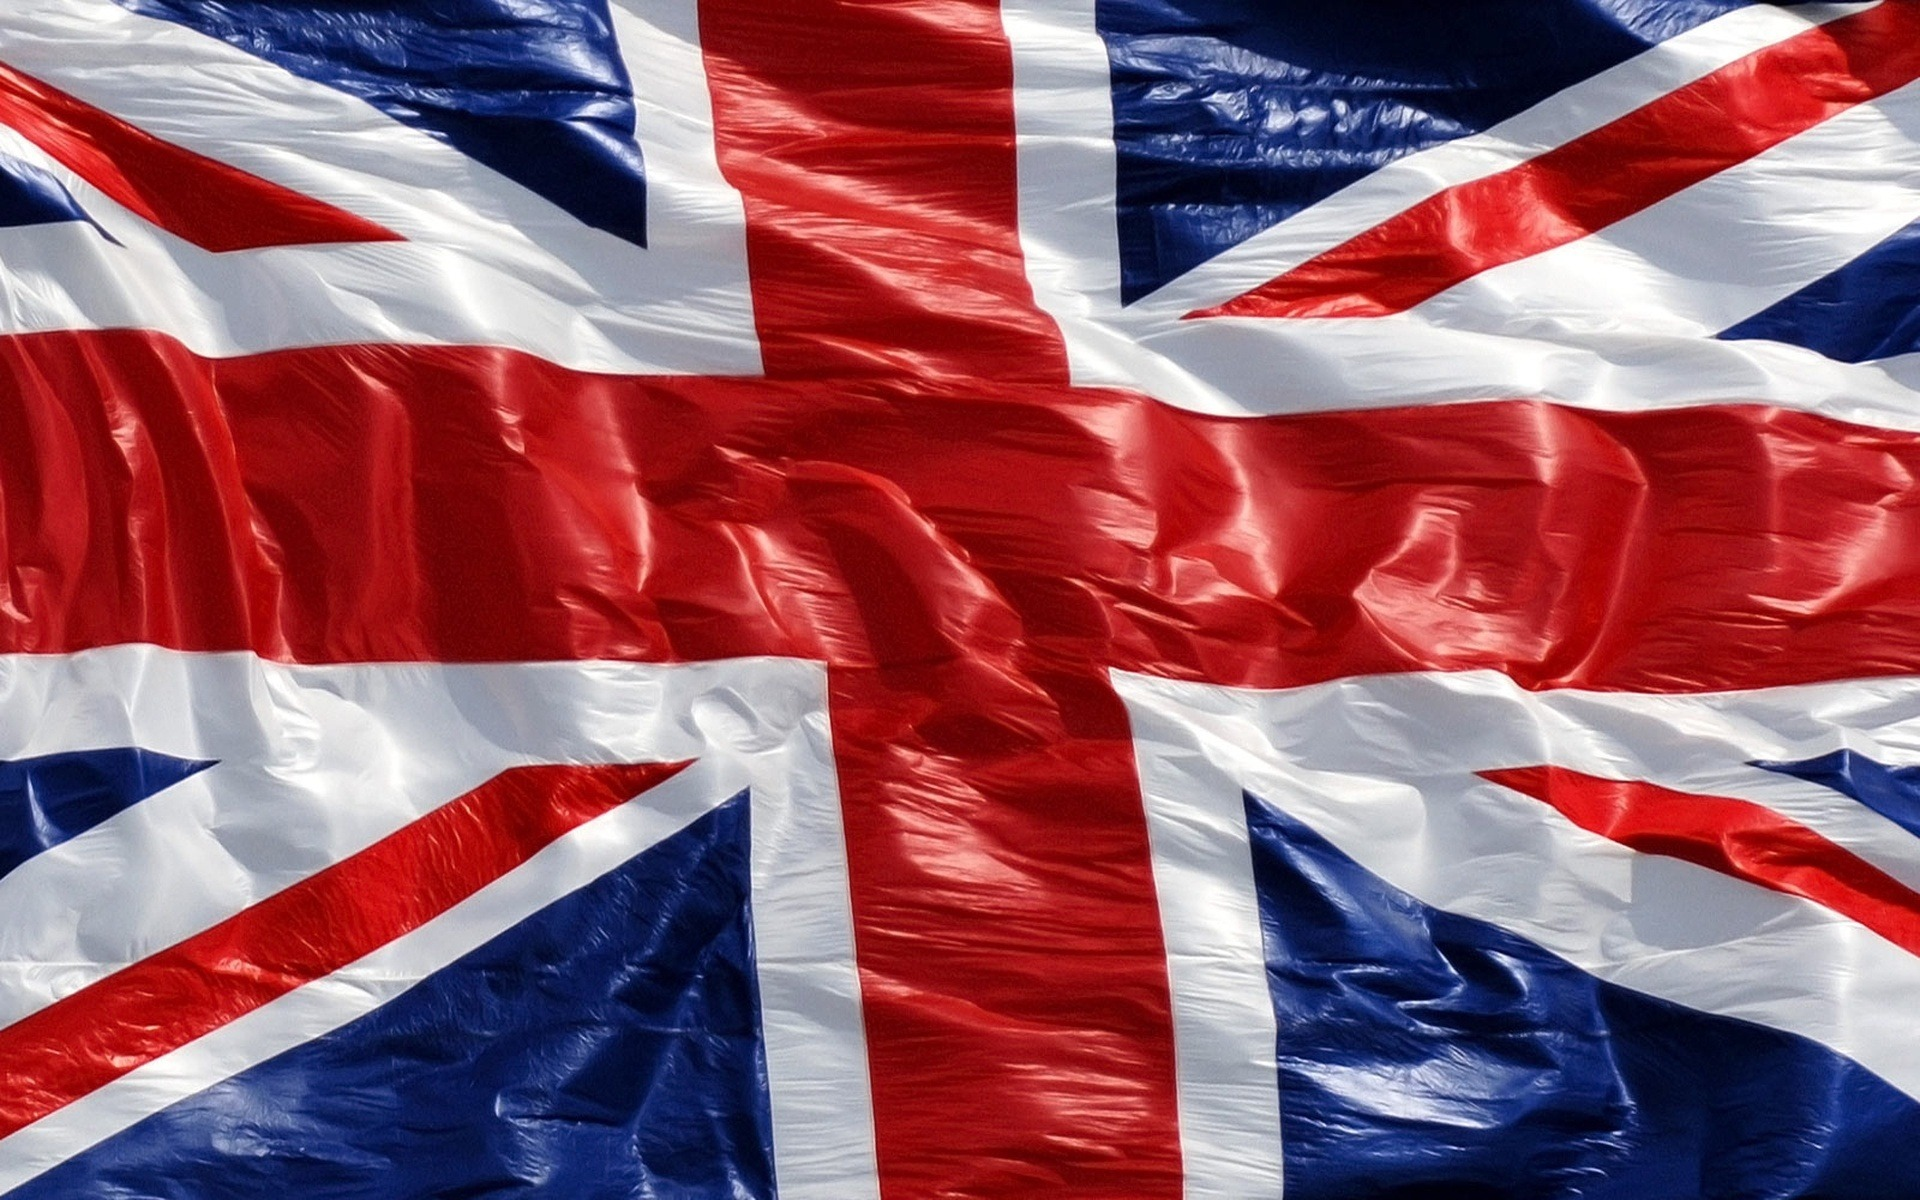 English flag wallpapers and images 1920x1200